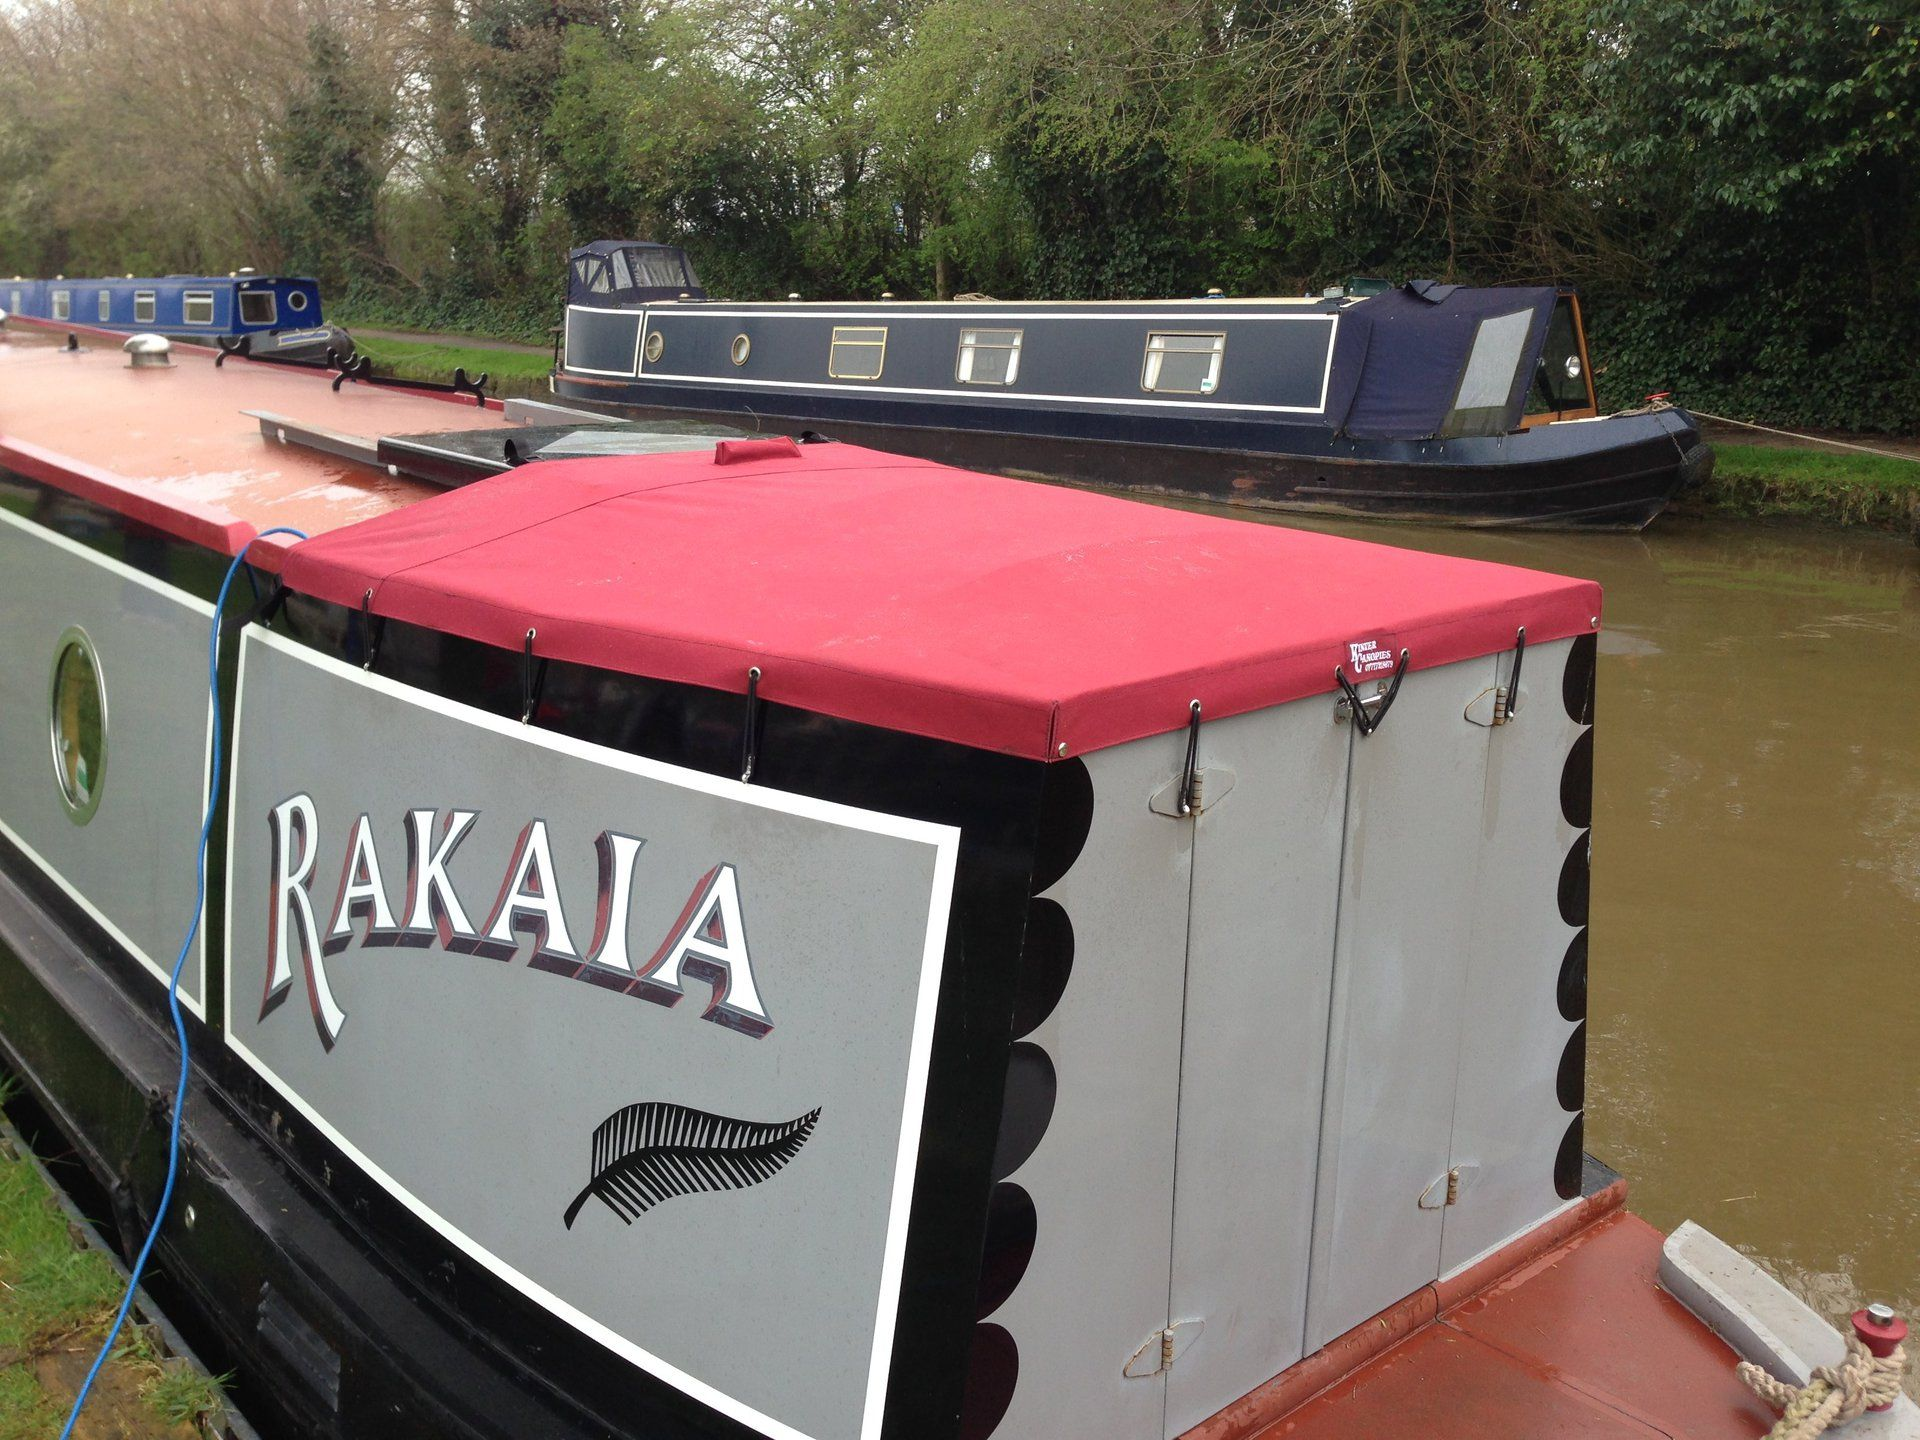 Semitrad for narrowboat fitted with bungee cord